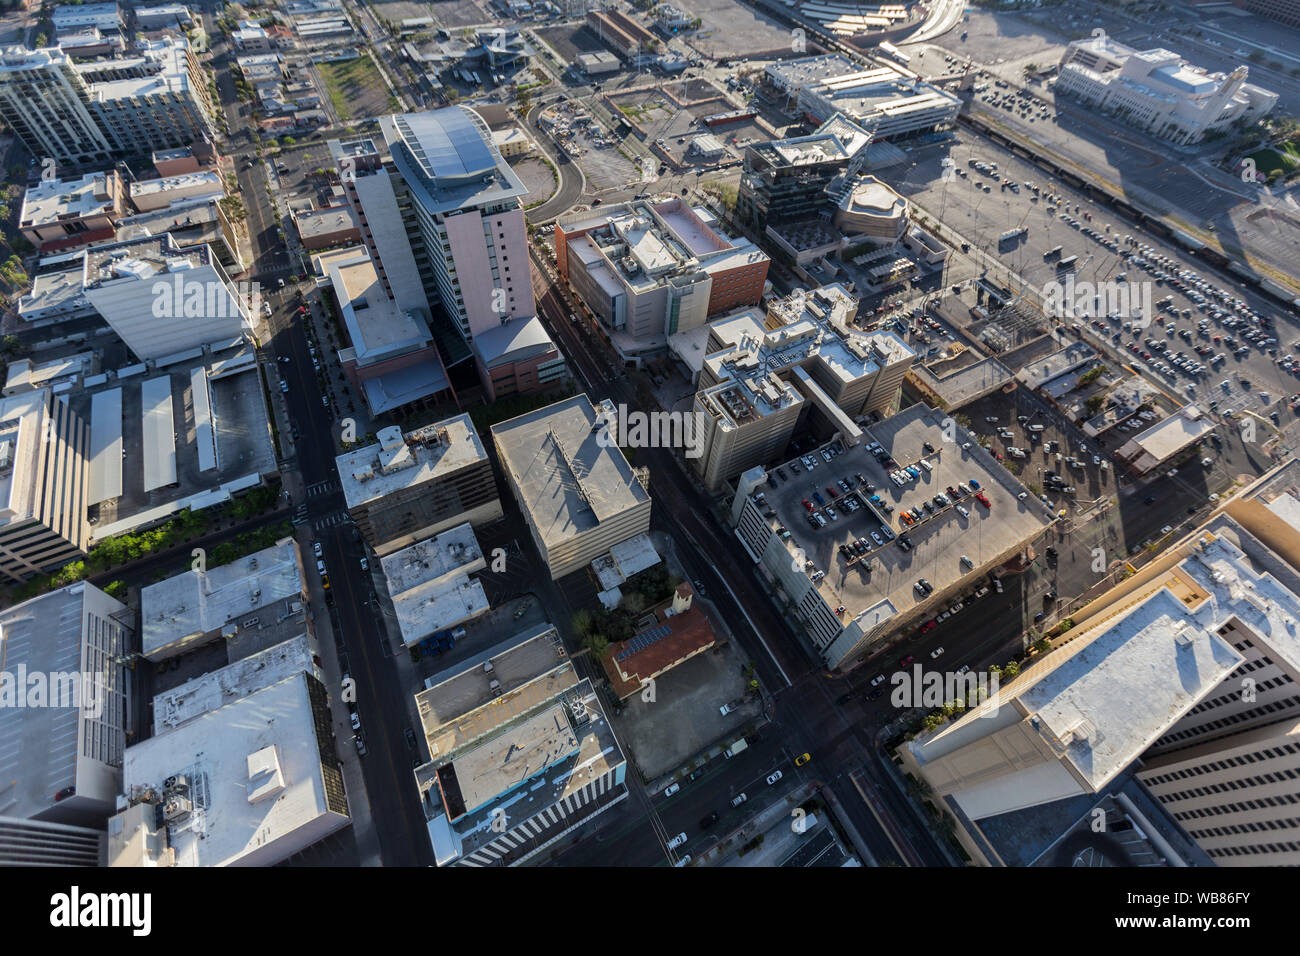 Aerial view of Clark County government buildings and South Casino Center Blvd in downtown Las Vegas, Nevada, USA. Stock Photo